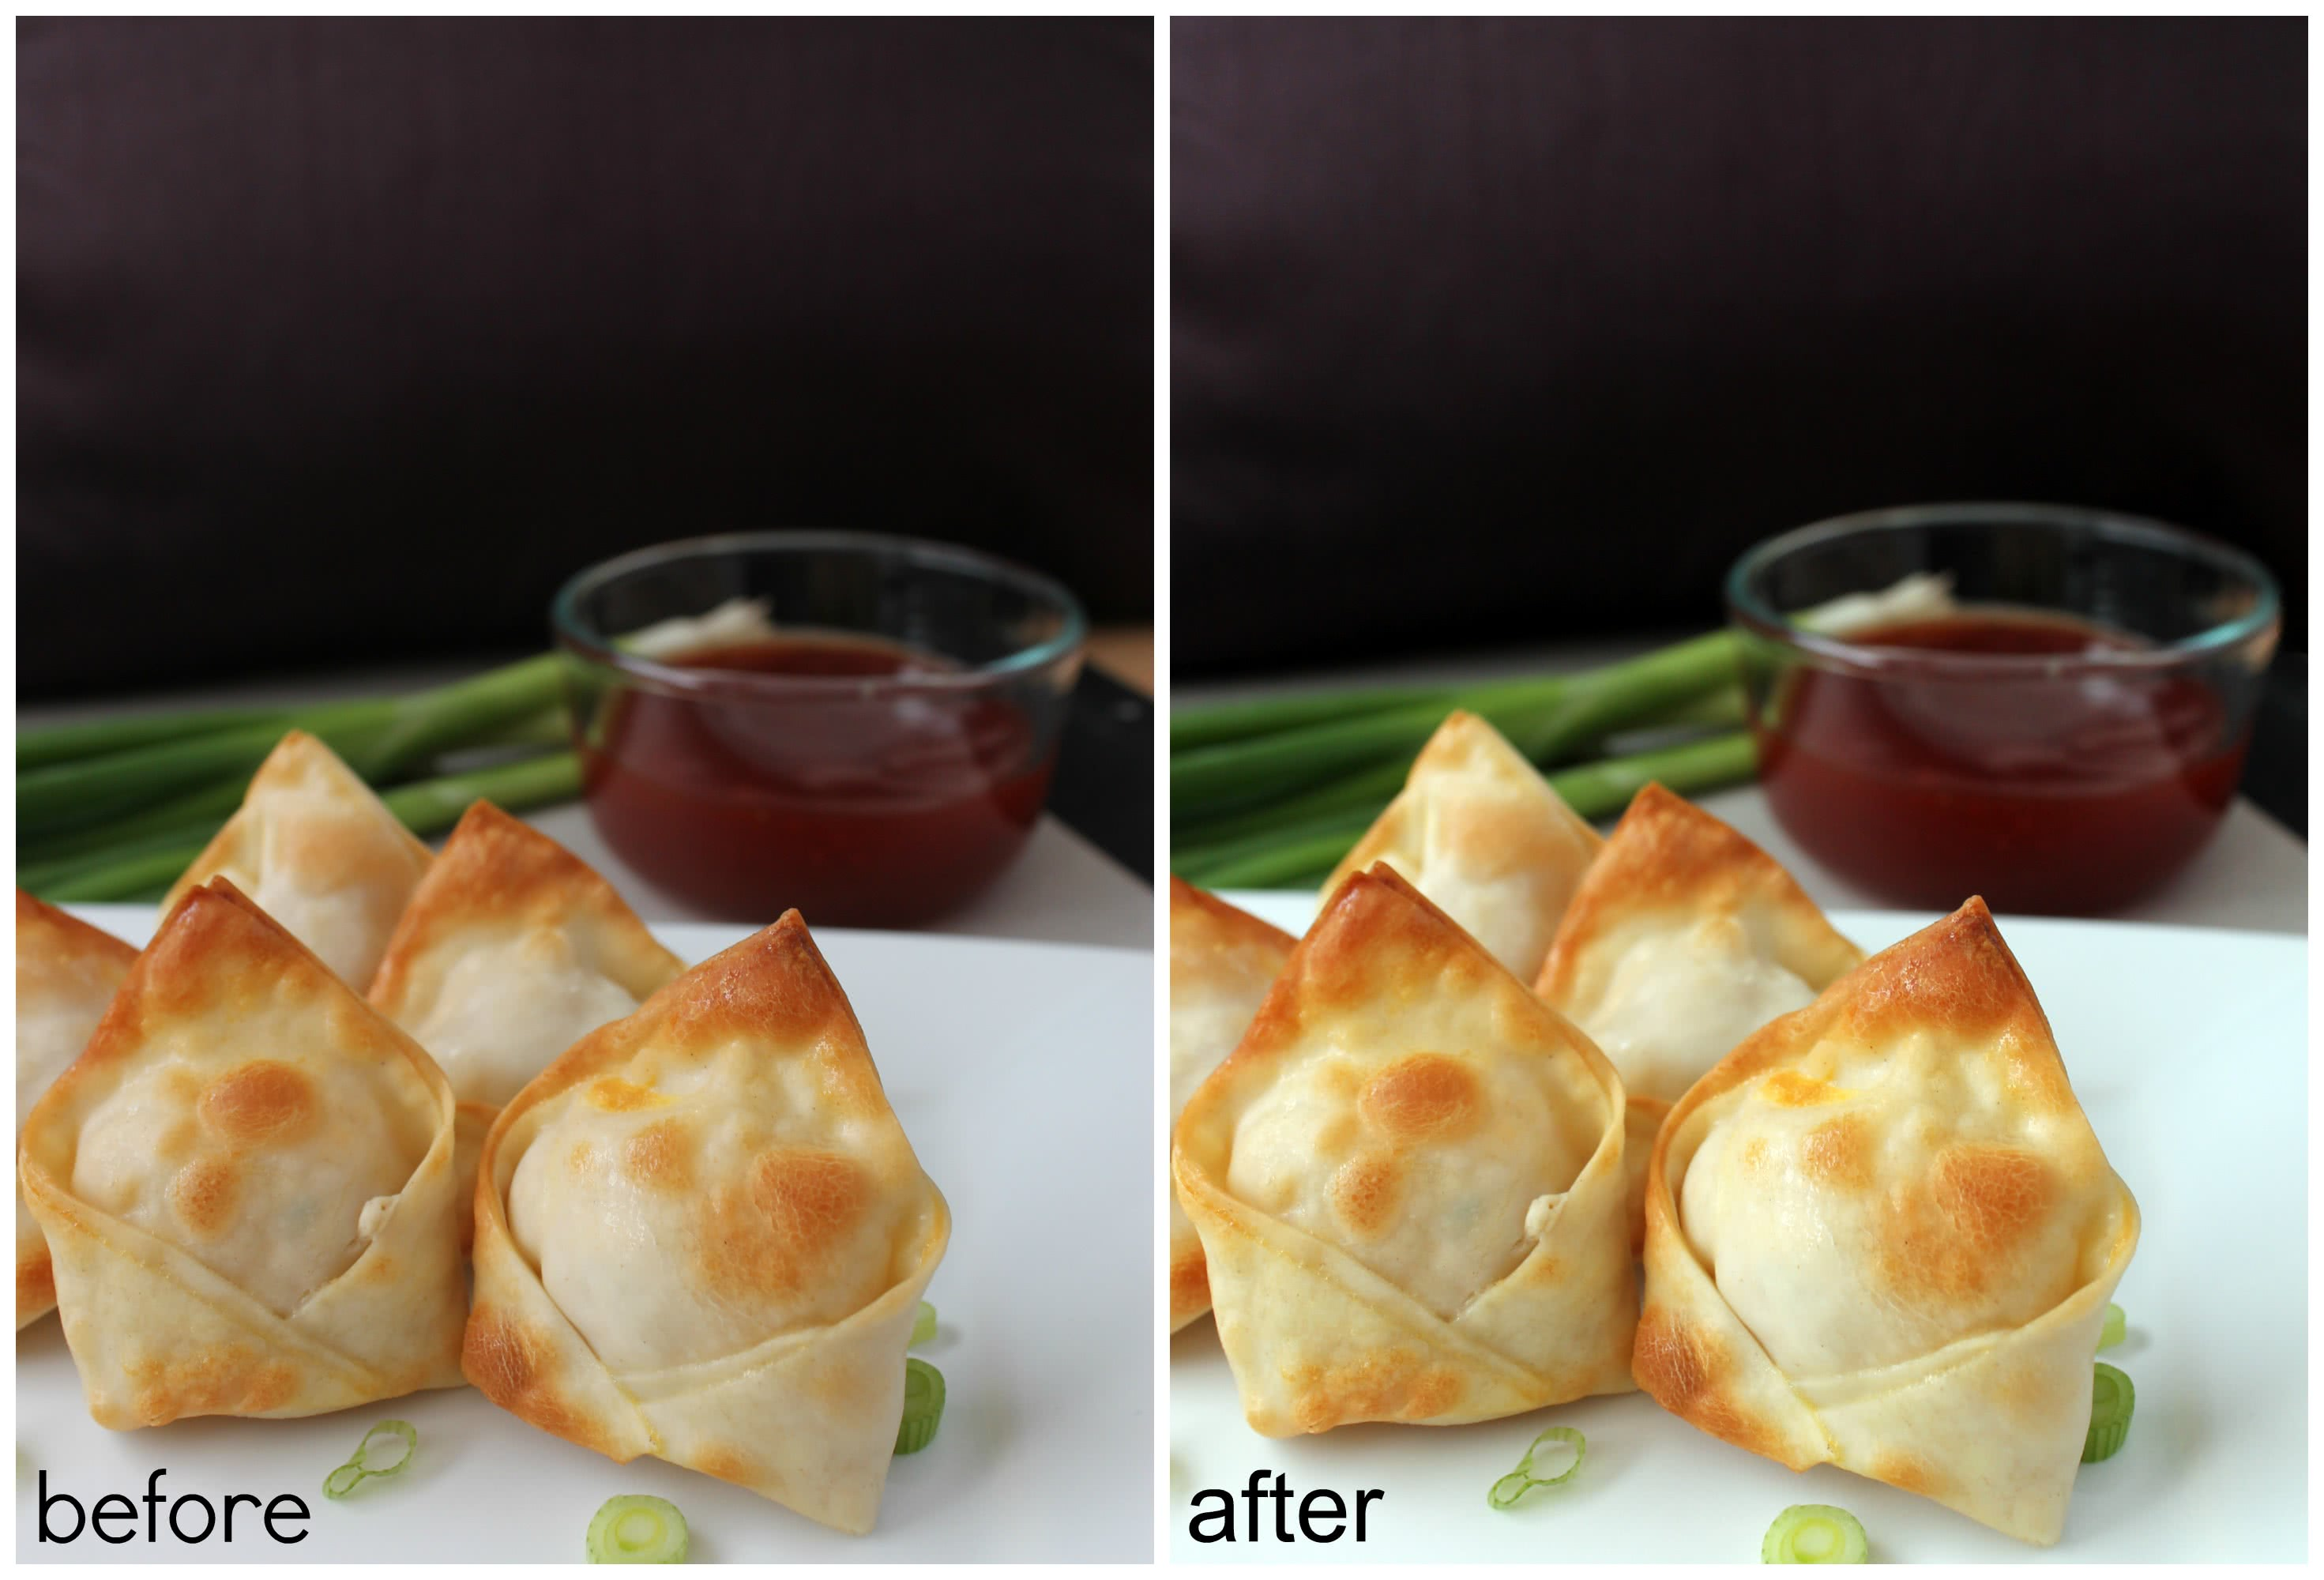 crab-rangoons-photoshop-before-and-after